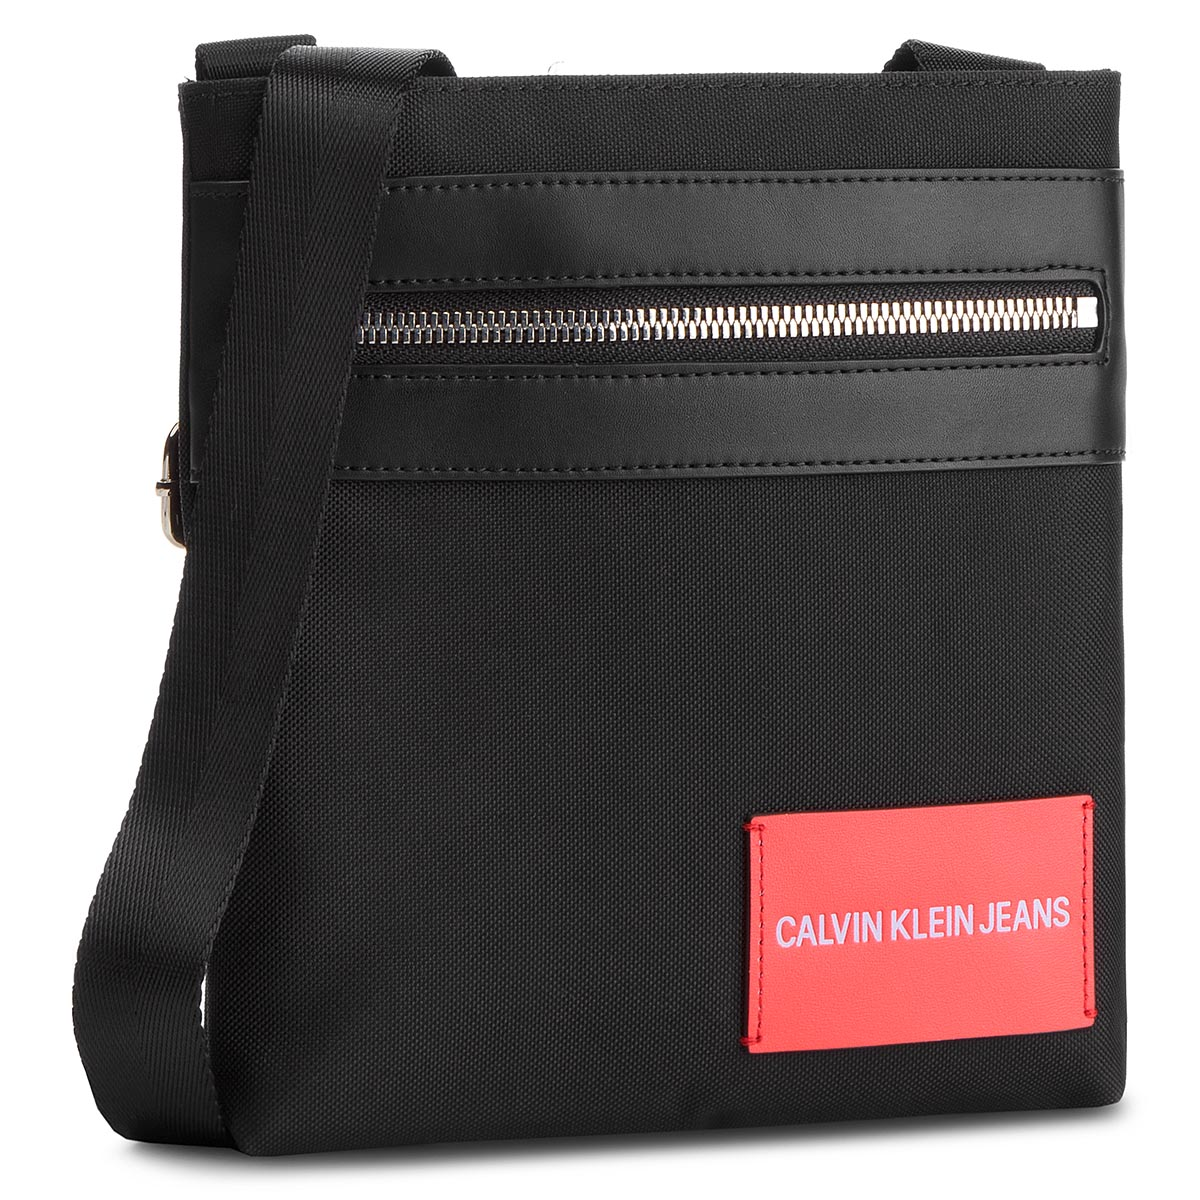 Geantă Crossover Calvin Klein Jeans - Sp Essential + Micro Flat Pack K40k400801 001 imagine